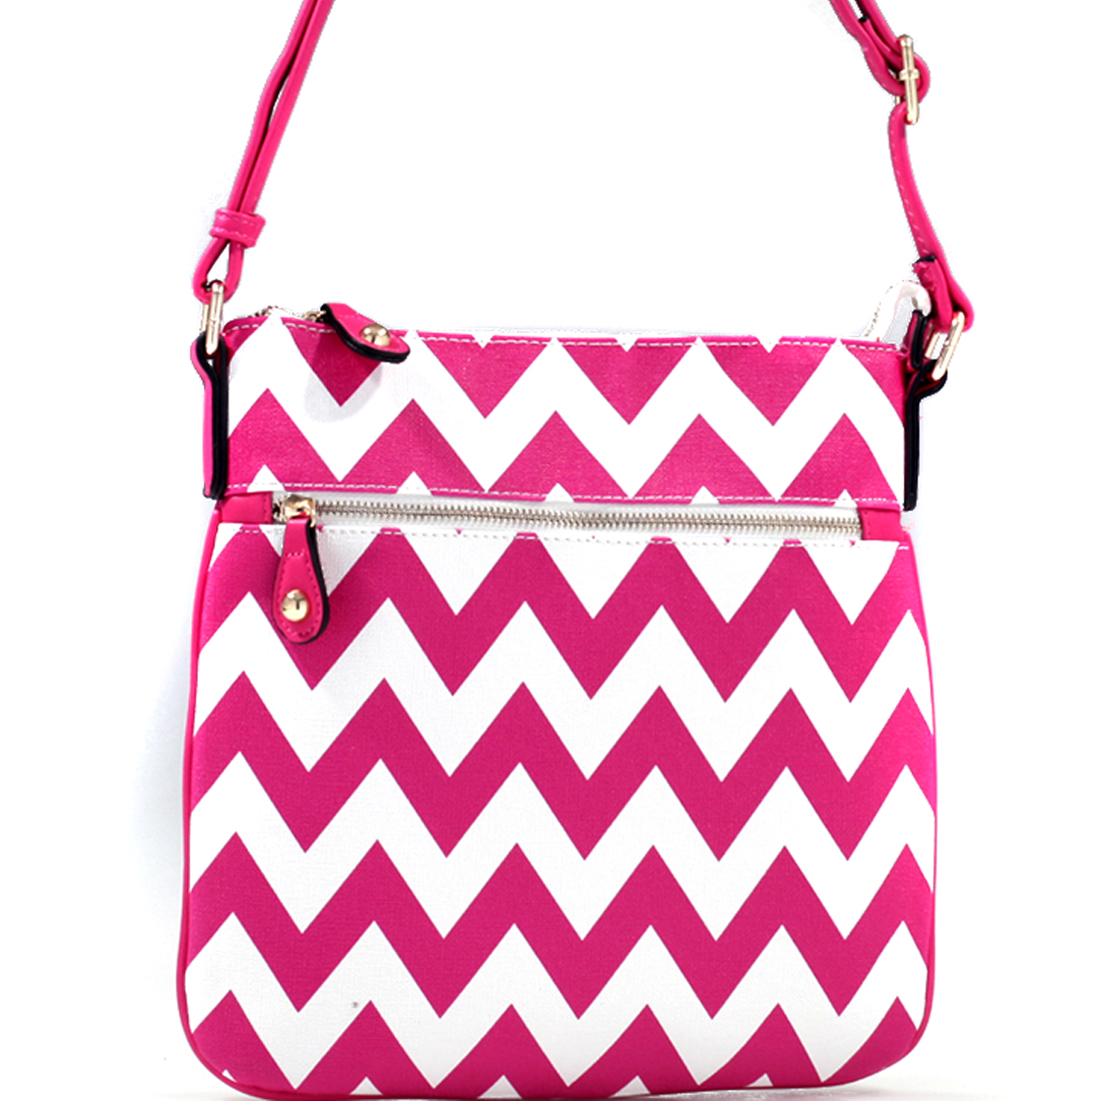 Chevron Print Messenger Bag with Adjustable Shoulder Strap